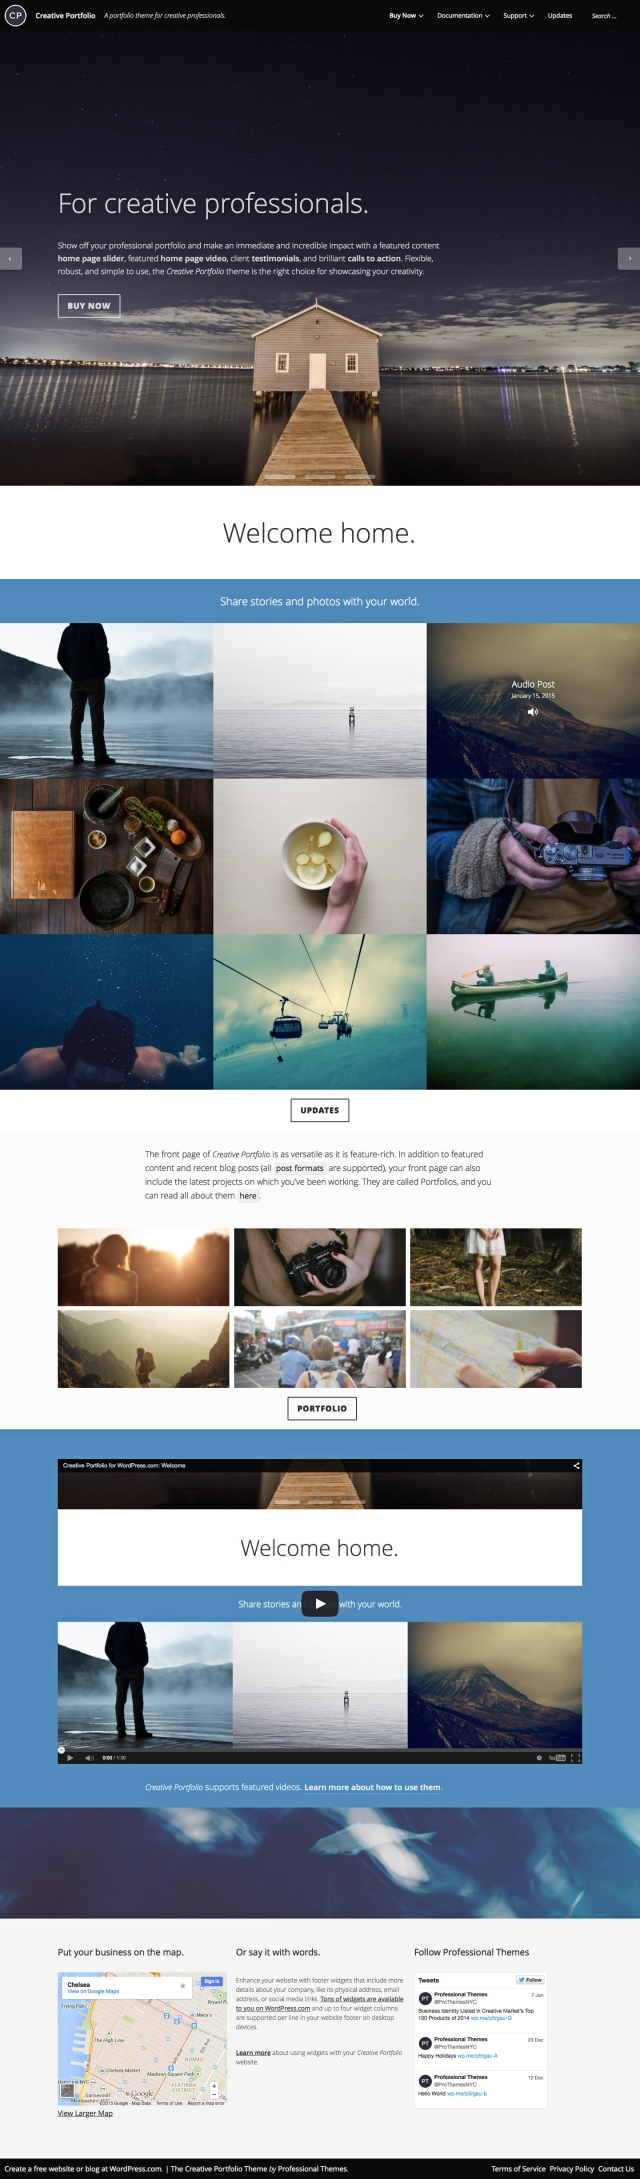 The Creative Portfolio front page.